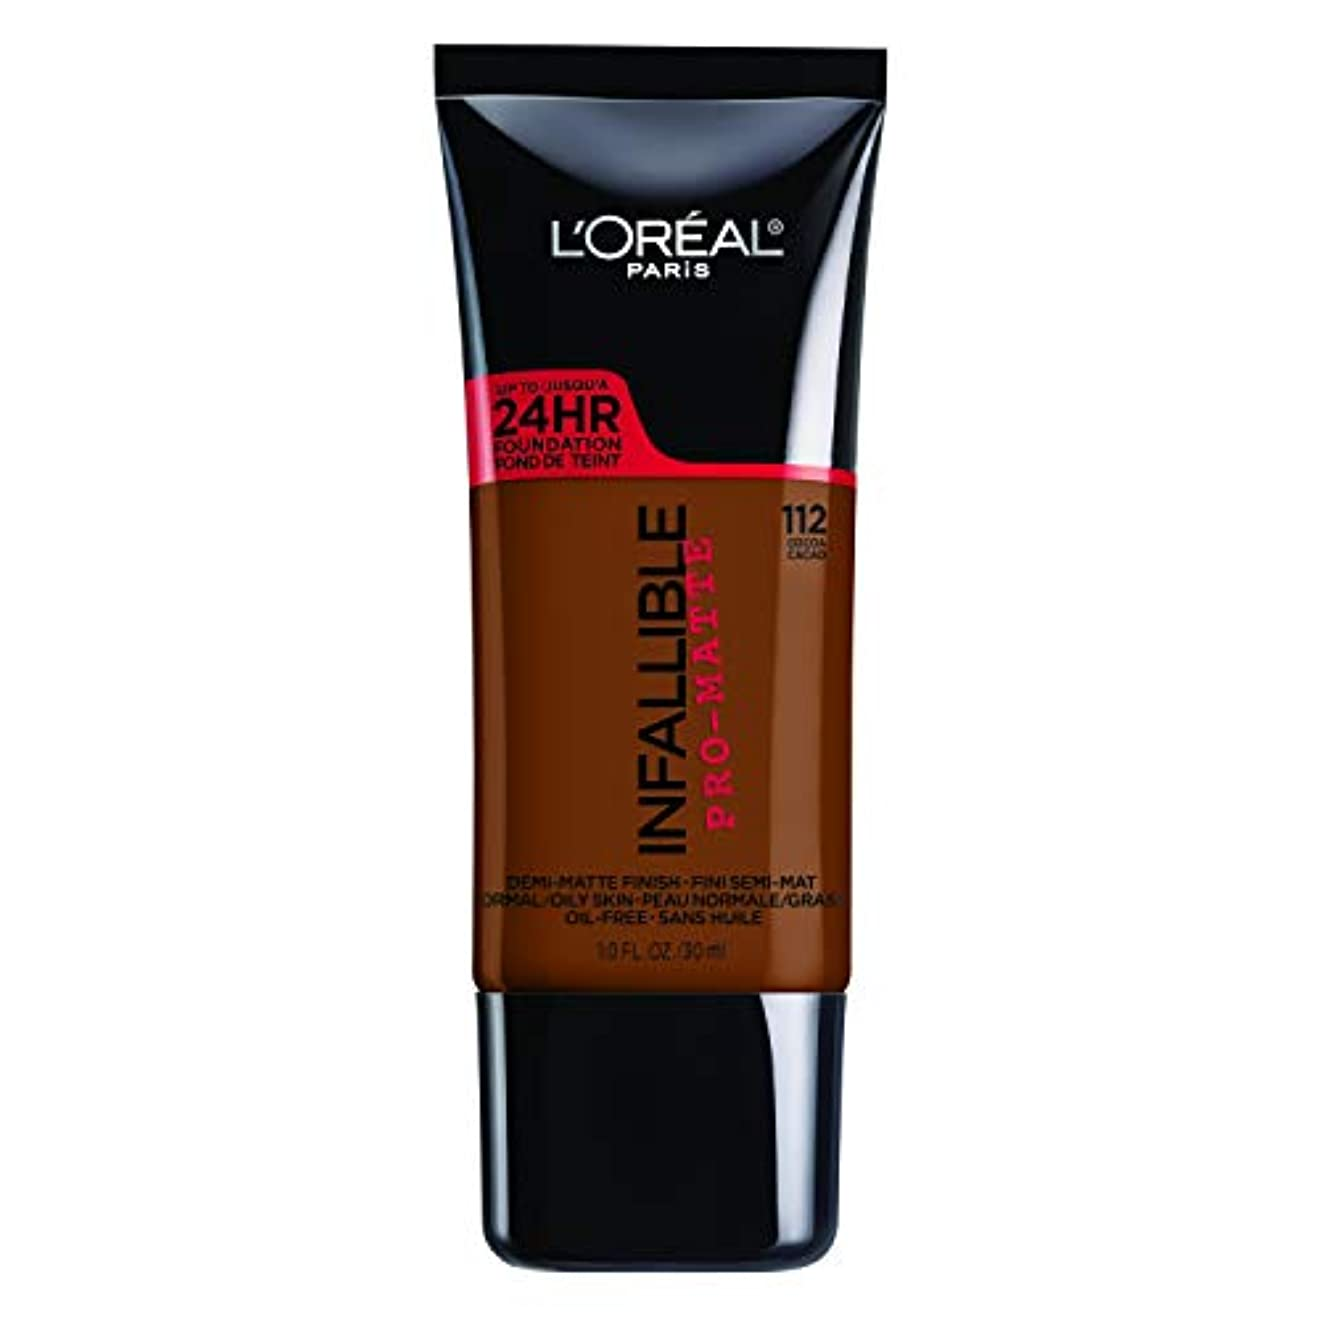 一次リファイン木曜日L'Oreal Paris Infallible Pro-Matte Foundation Makeup, 112 Cocoa, 1 fl. oz[並行輸入品]